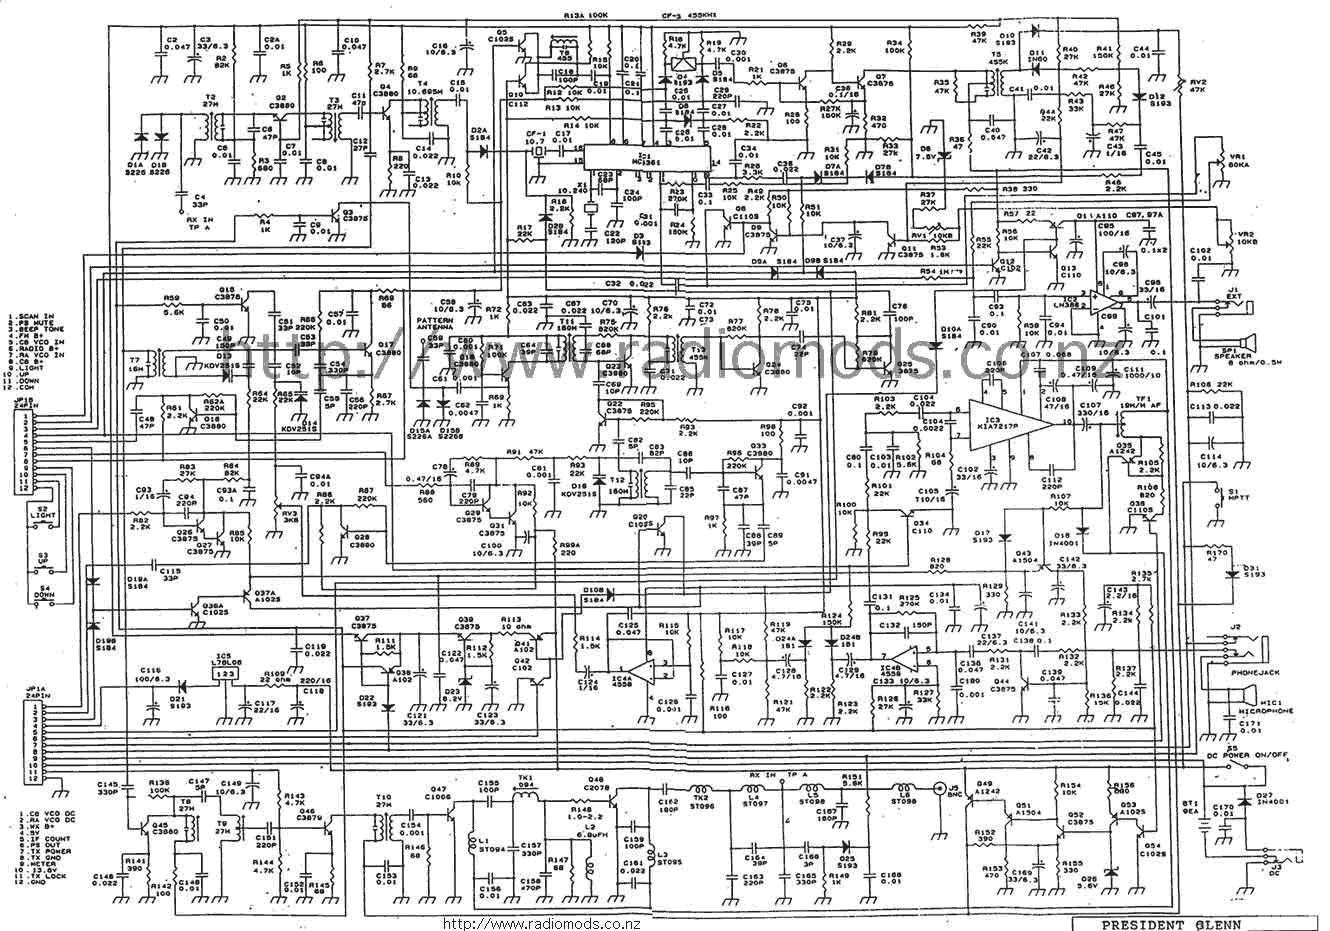 presidentglenncd the defpom cb and ham circuit diagram page circuit diagram pdf at bakdesigns.co